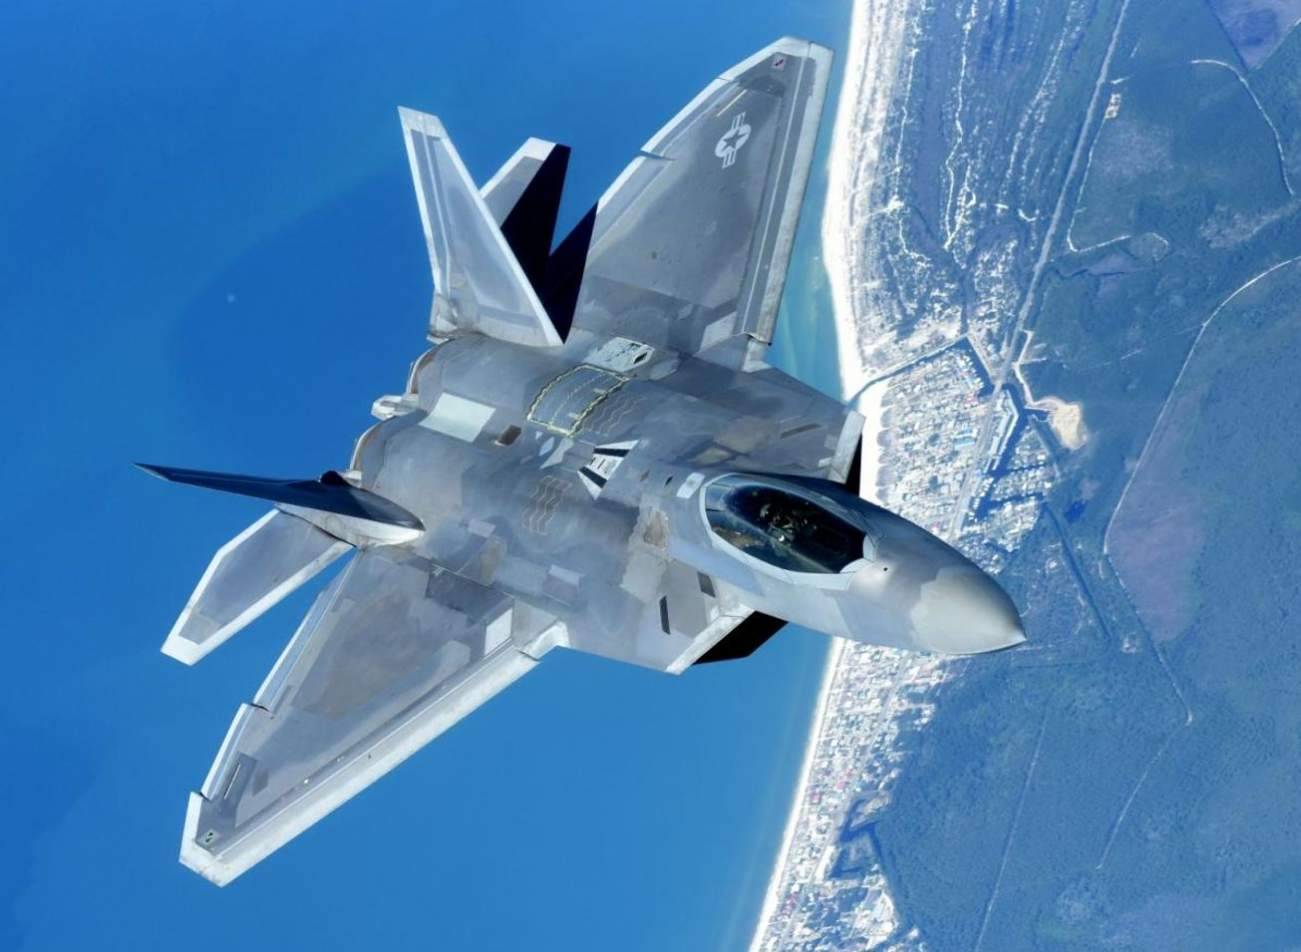 The Air Force Has Given the F-22 a New Weapon (And a New Way to Wage War Too)